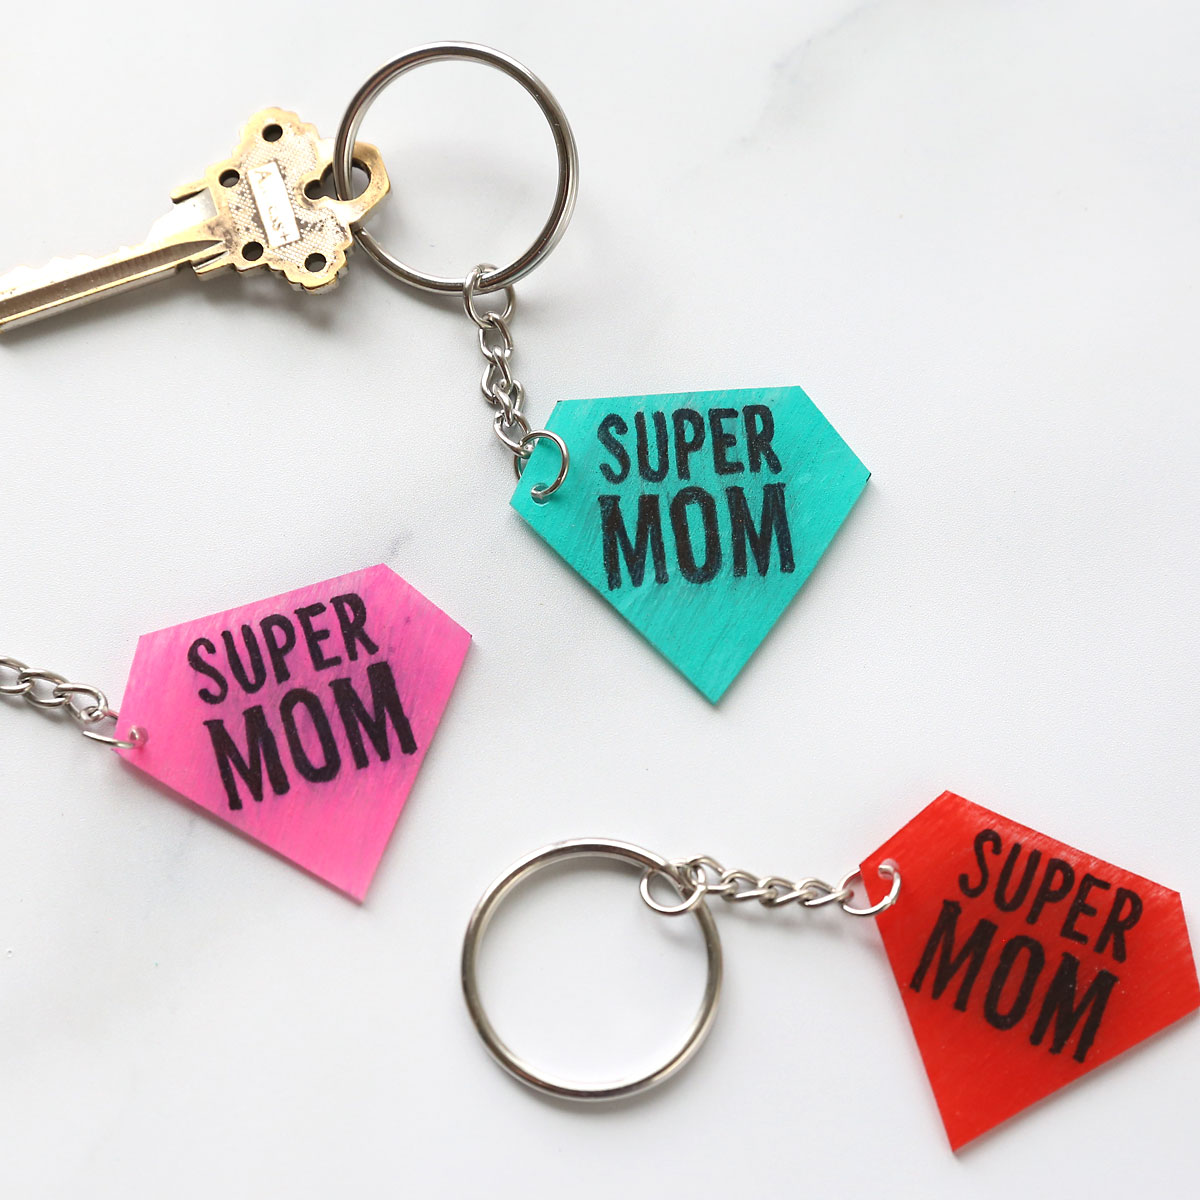 Super mom shrinky dink keychains